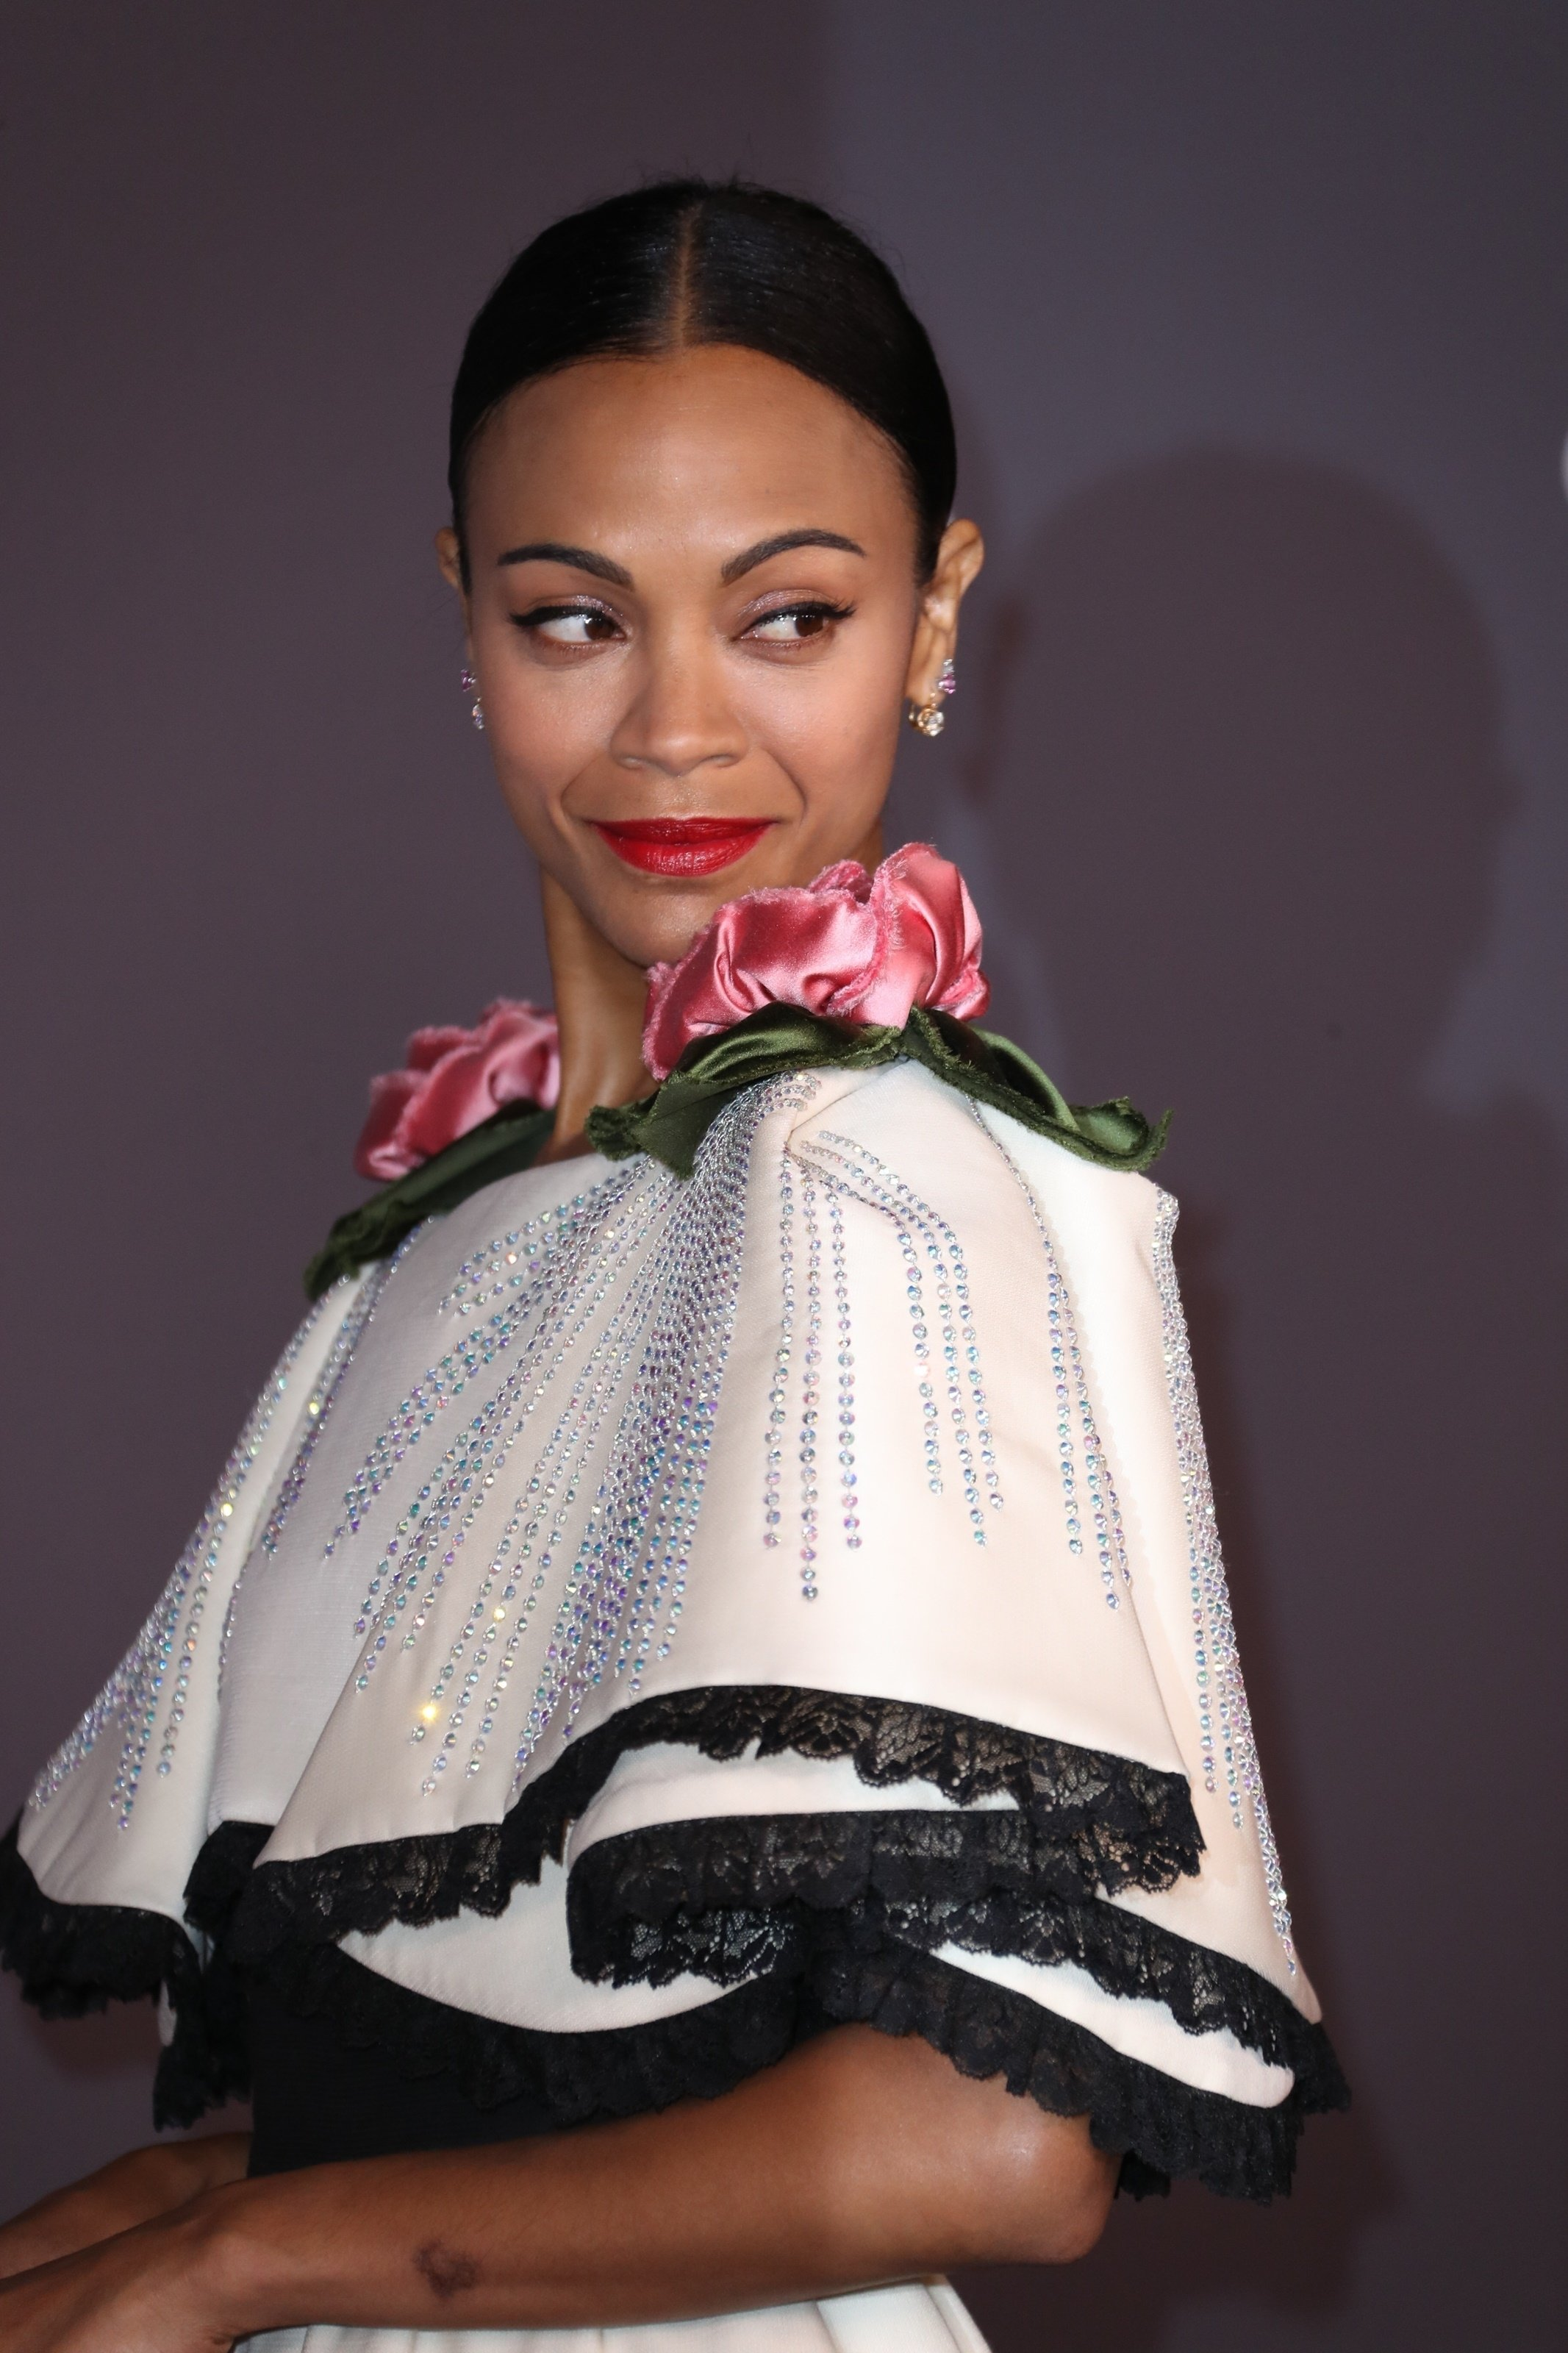 Los Angeles, CA  - 2017 LACMA Art and Film Gala held at the Los Angeles County Museum of Art in Los Angeles, California.  Pictured: Zoe Saldana  BACKGRID USA 4 NOVEMBER 2017, Image: 354638458, License: Rights-managed, Restrictions: , Model Release: no, Credit line: Profimedia, AKM-GSI